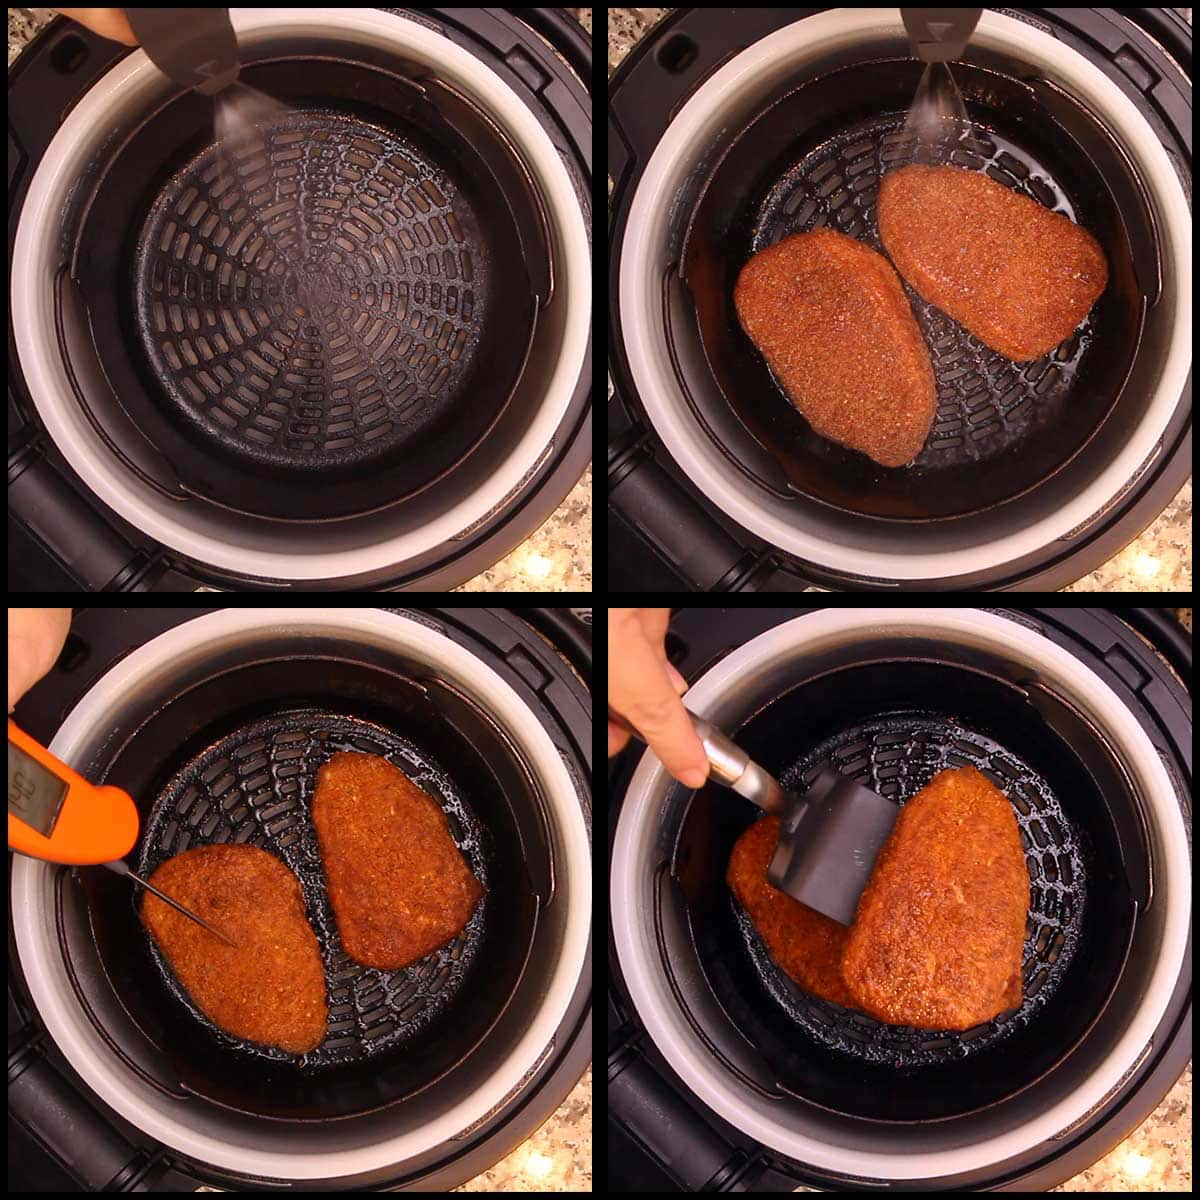 spritzing and cooking the pork chops in the Ninja Foodi